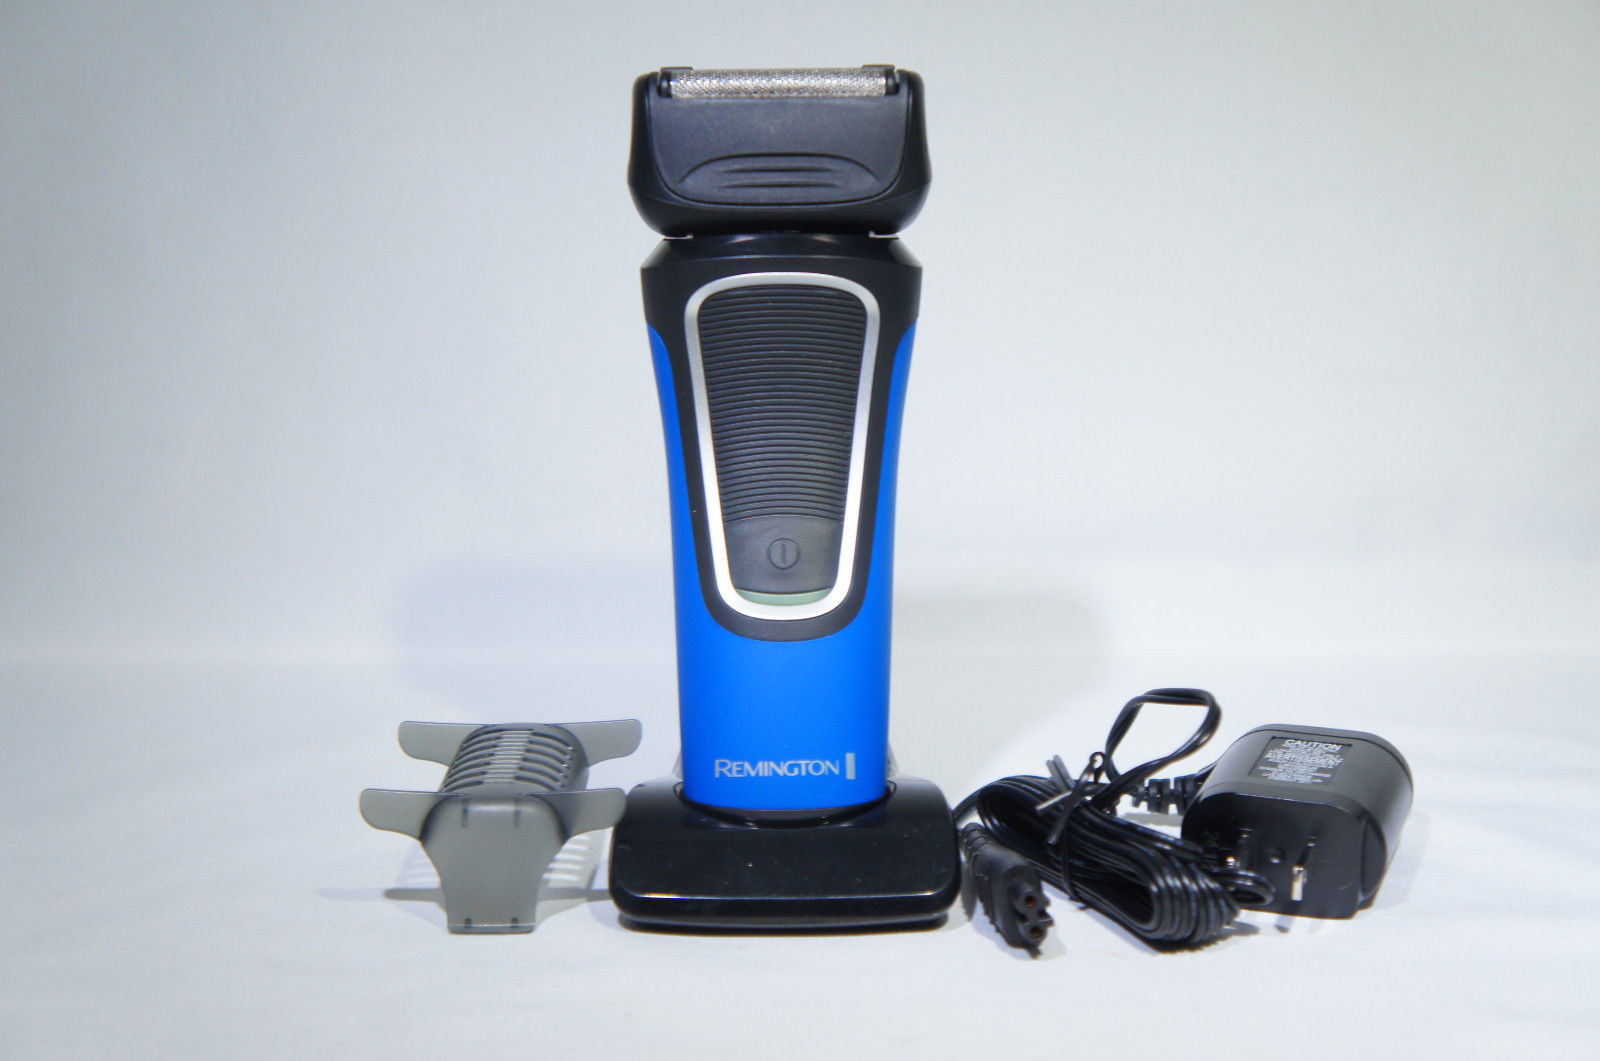 Remington PF7600 F8 Comfort Series Wet & Dry Foil Shaver (Like New)